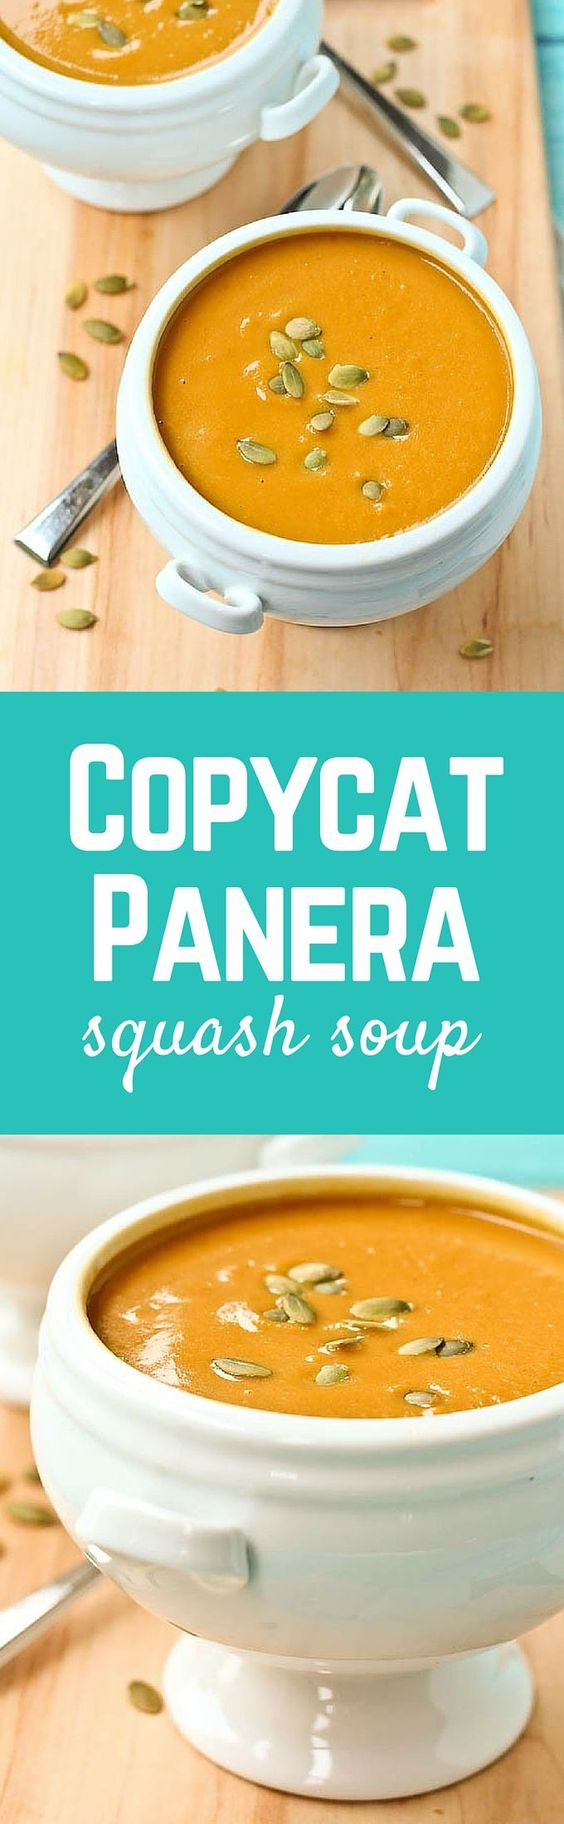 Copycat Panera Butternut Squash Soup Recipe | Rachel Cooks - The BEST Homemade Soups Recipes - Easy, Quick and Yummy Lunch and Dinner Family Favorites Meals Ideas